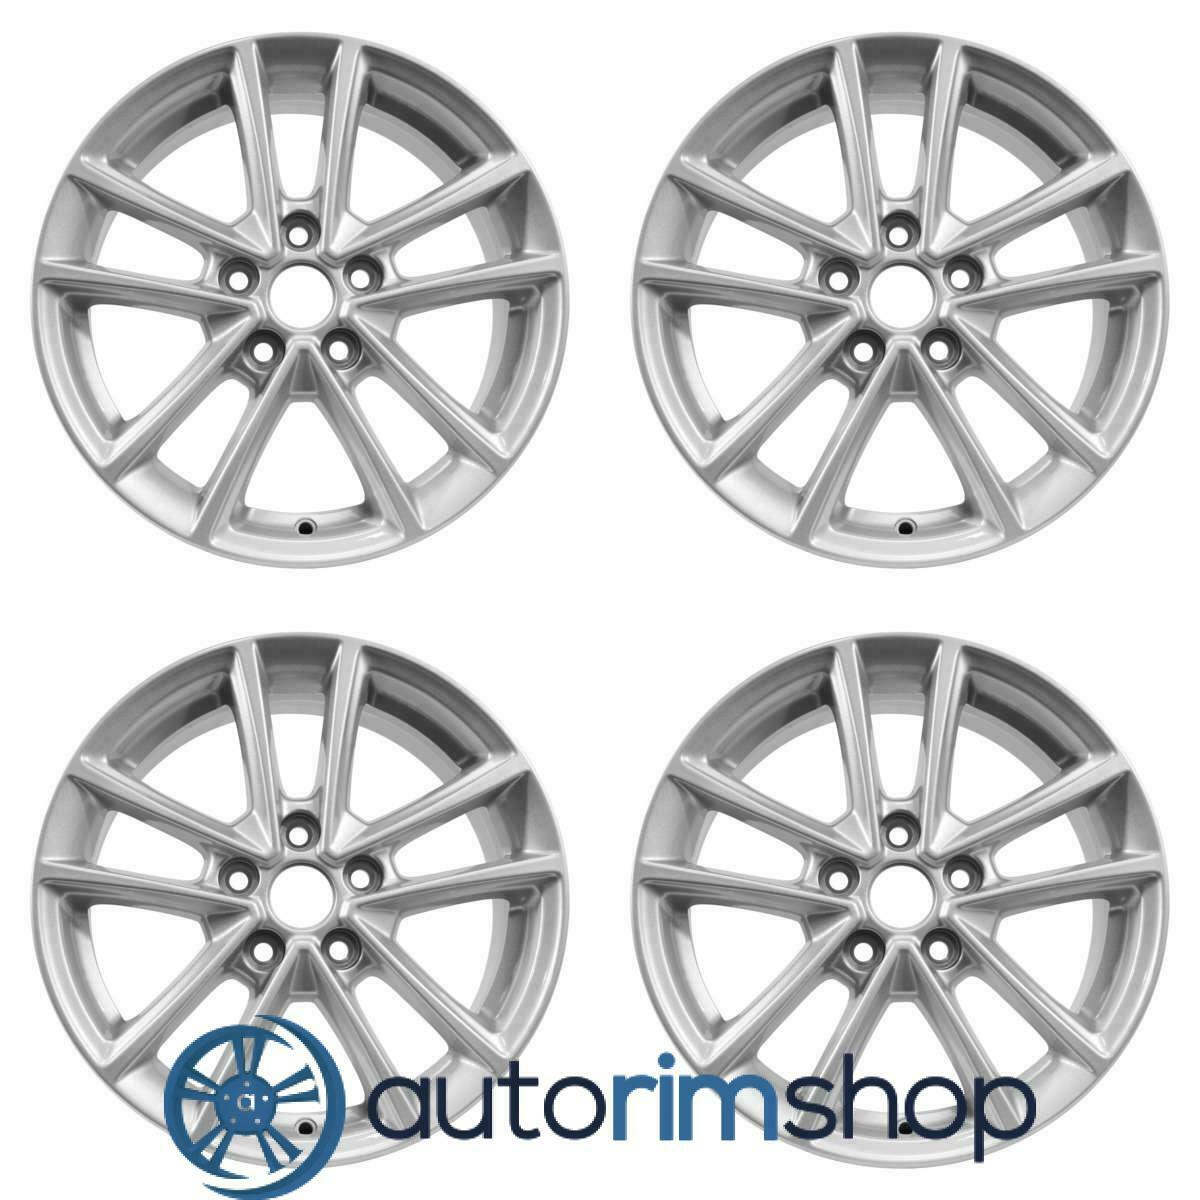 "Ford Focus 2015-2018 16"" Factory OEM Wheels Rims Set 1 of 1Only 1 available  ..."